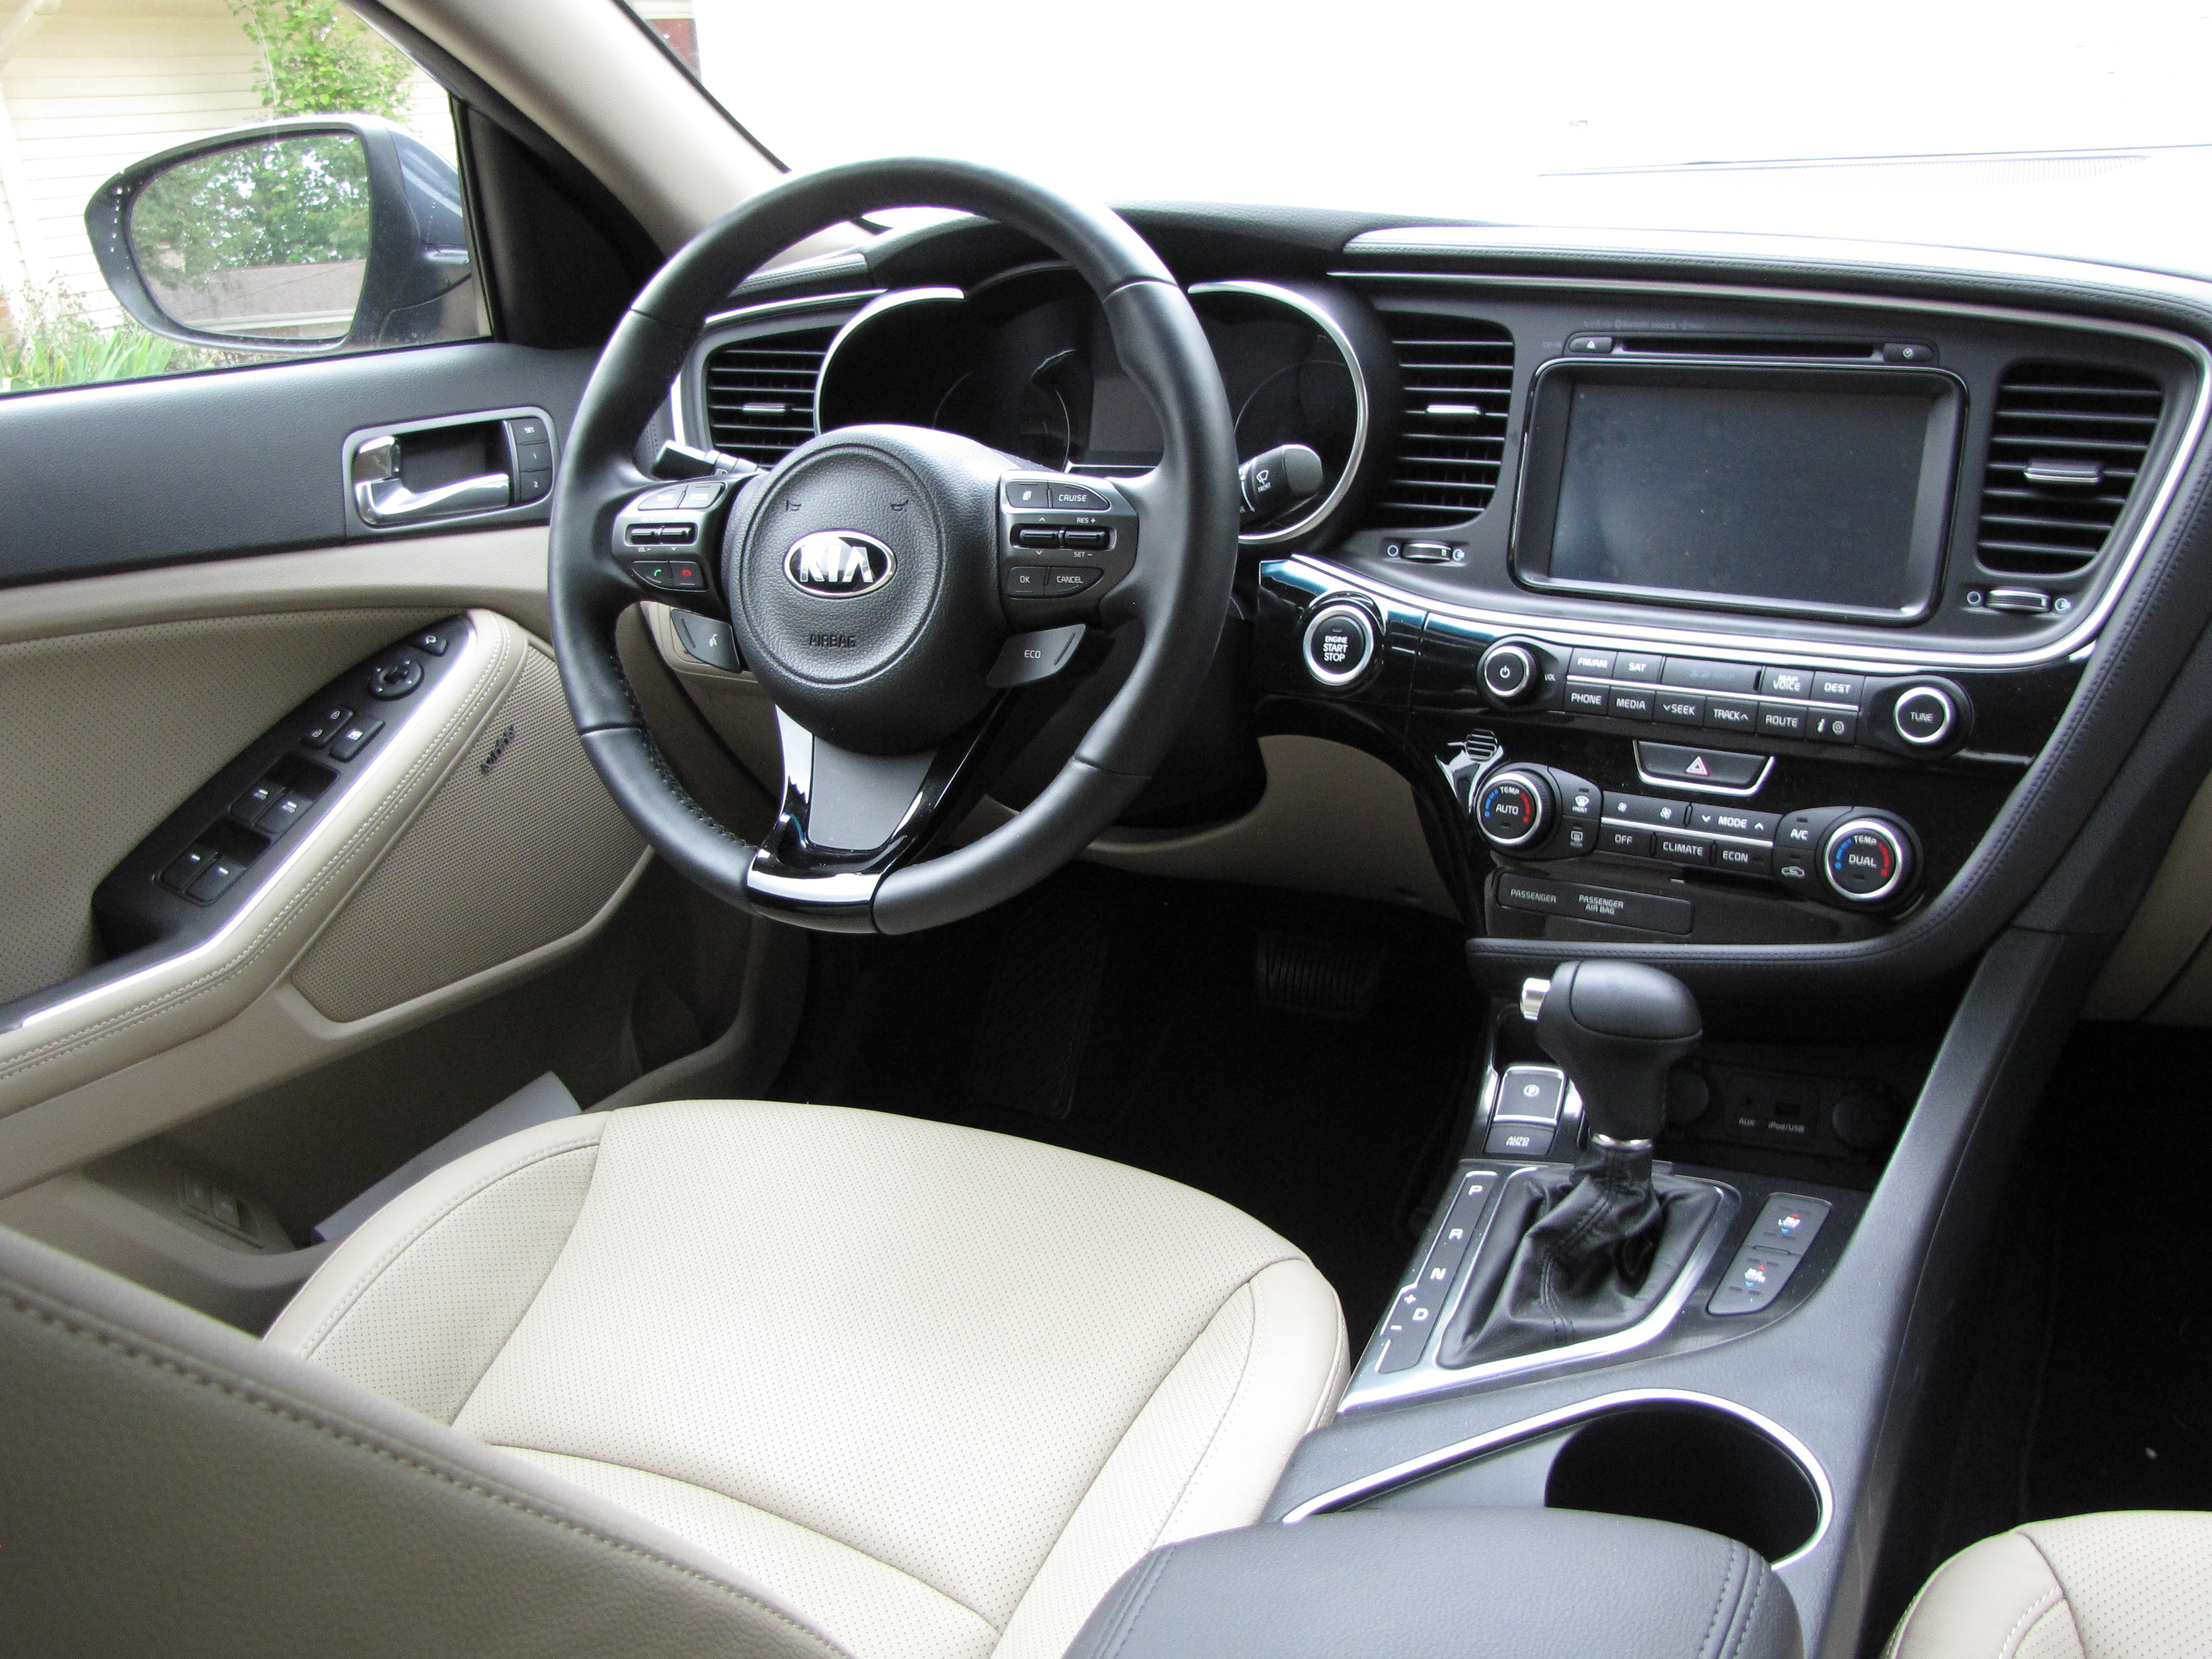 side body modifications interior in sxl lx forum appearance kia pictures vs by optima